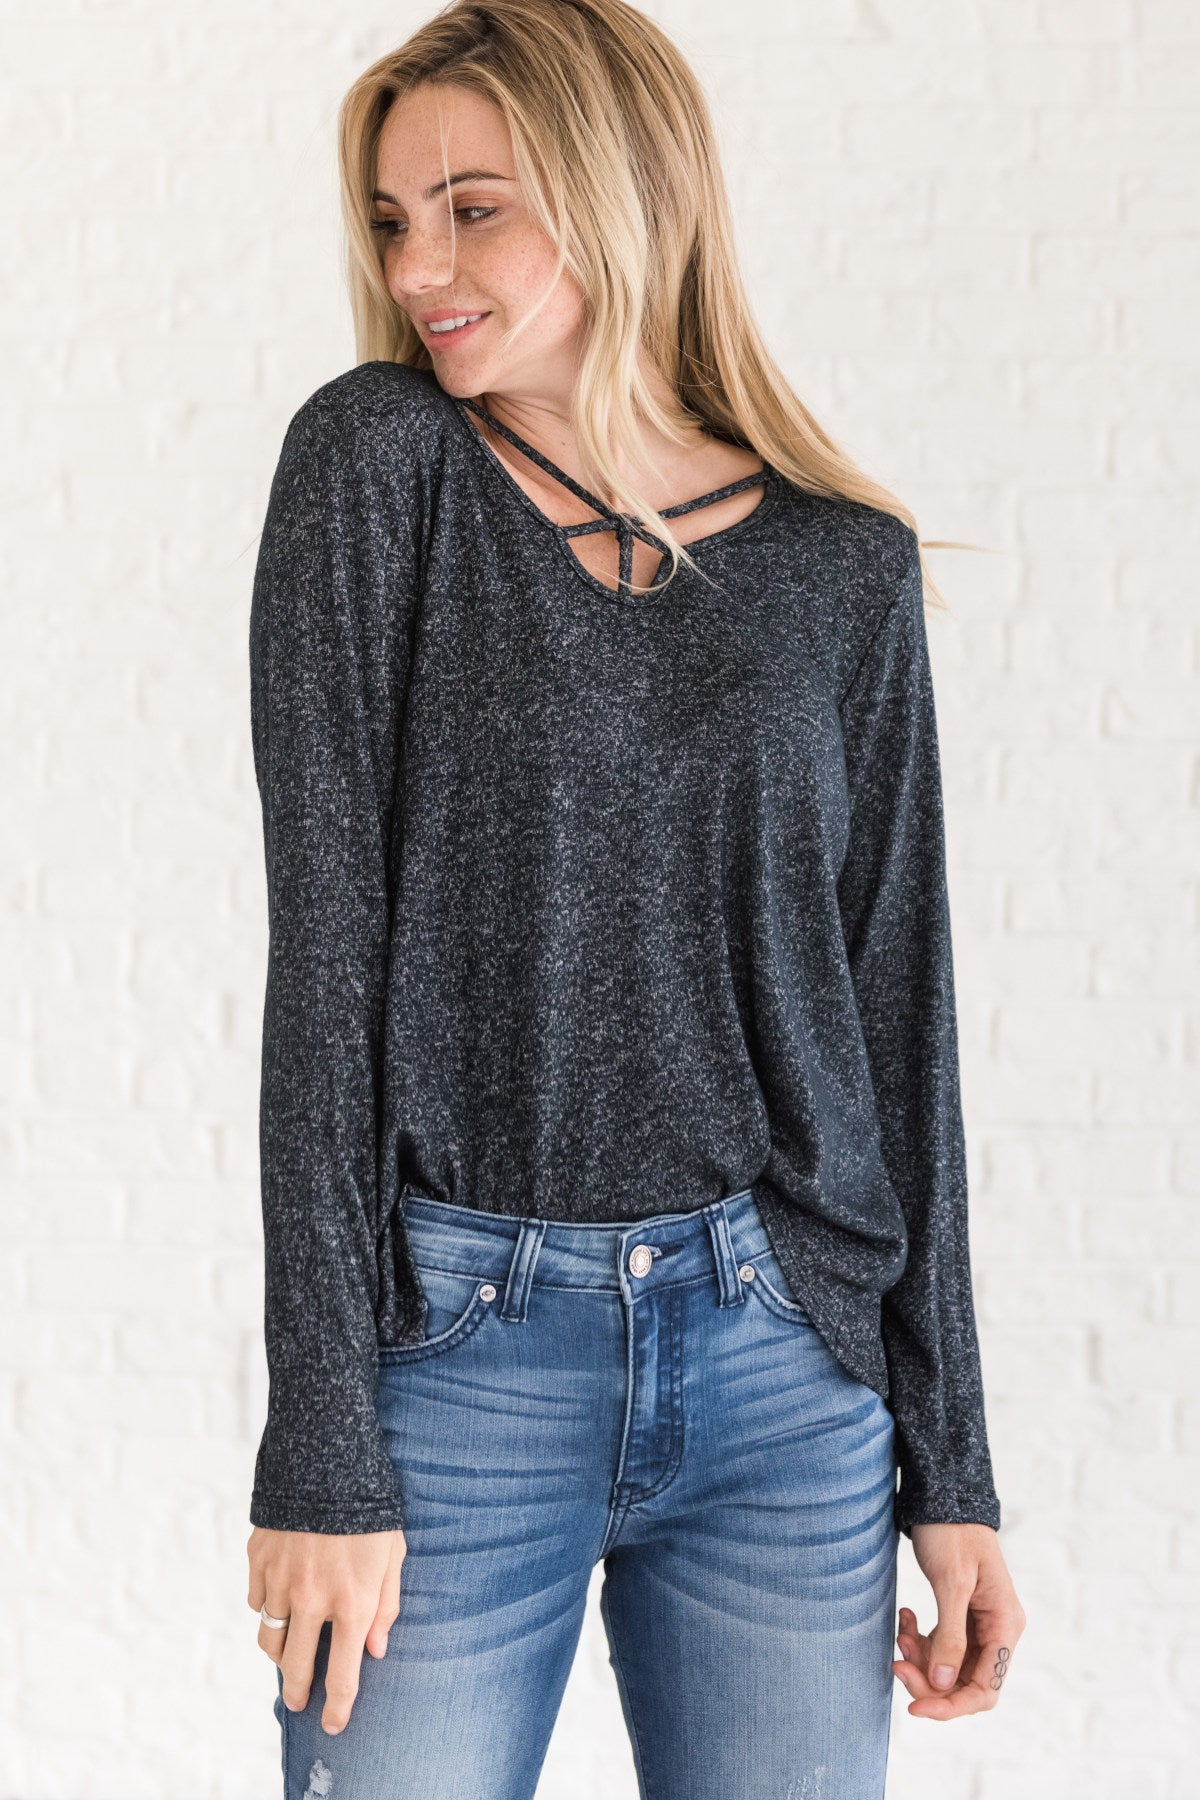 Navy Marled Heathered Pullover Strappy Criss Cross Tops Cozy